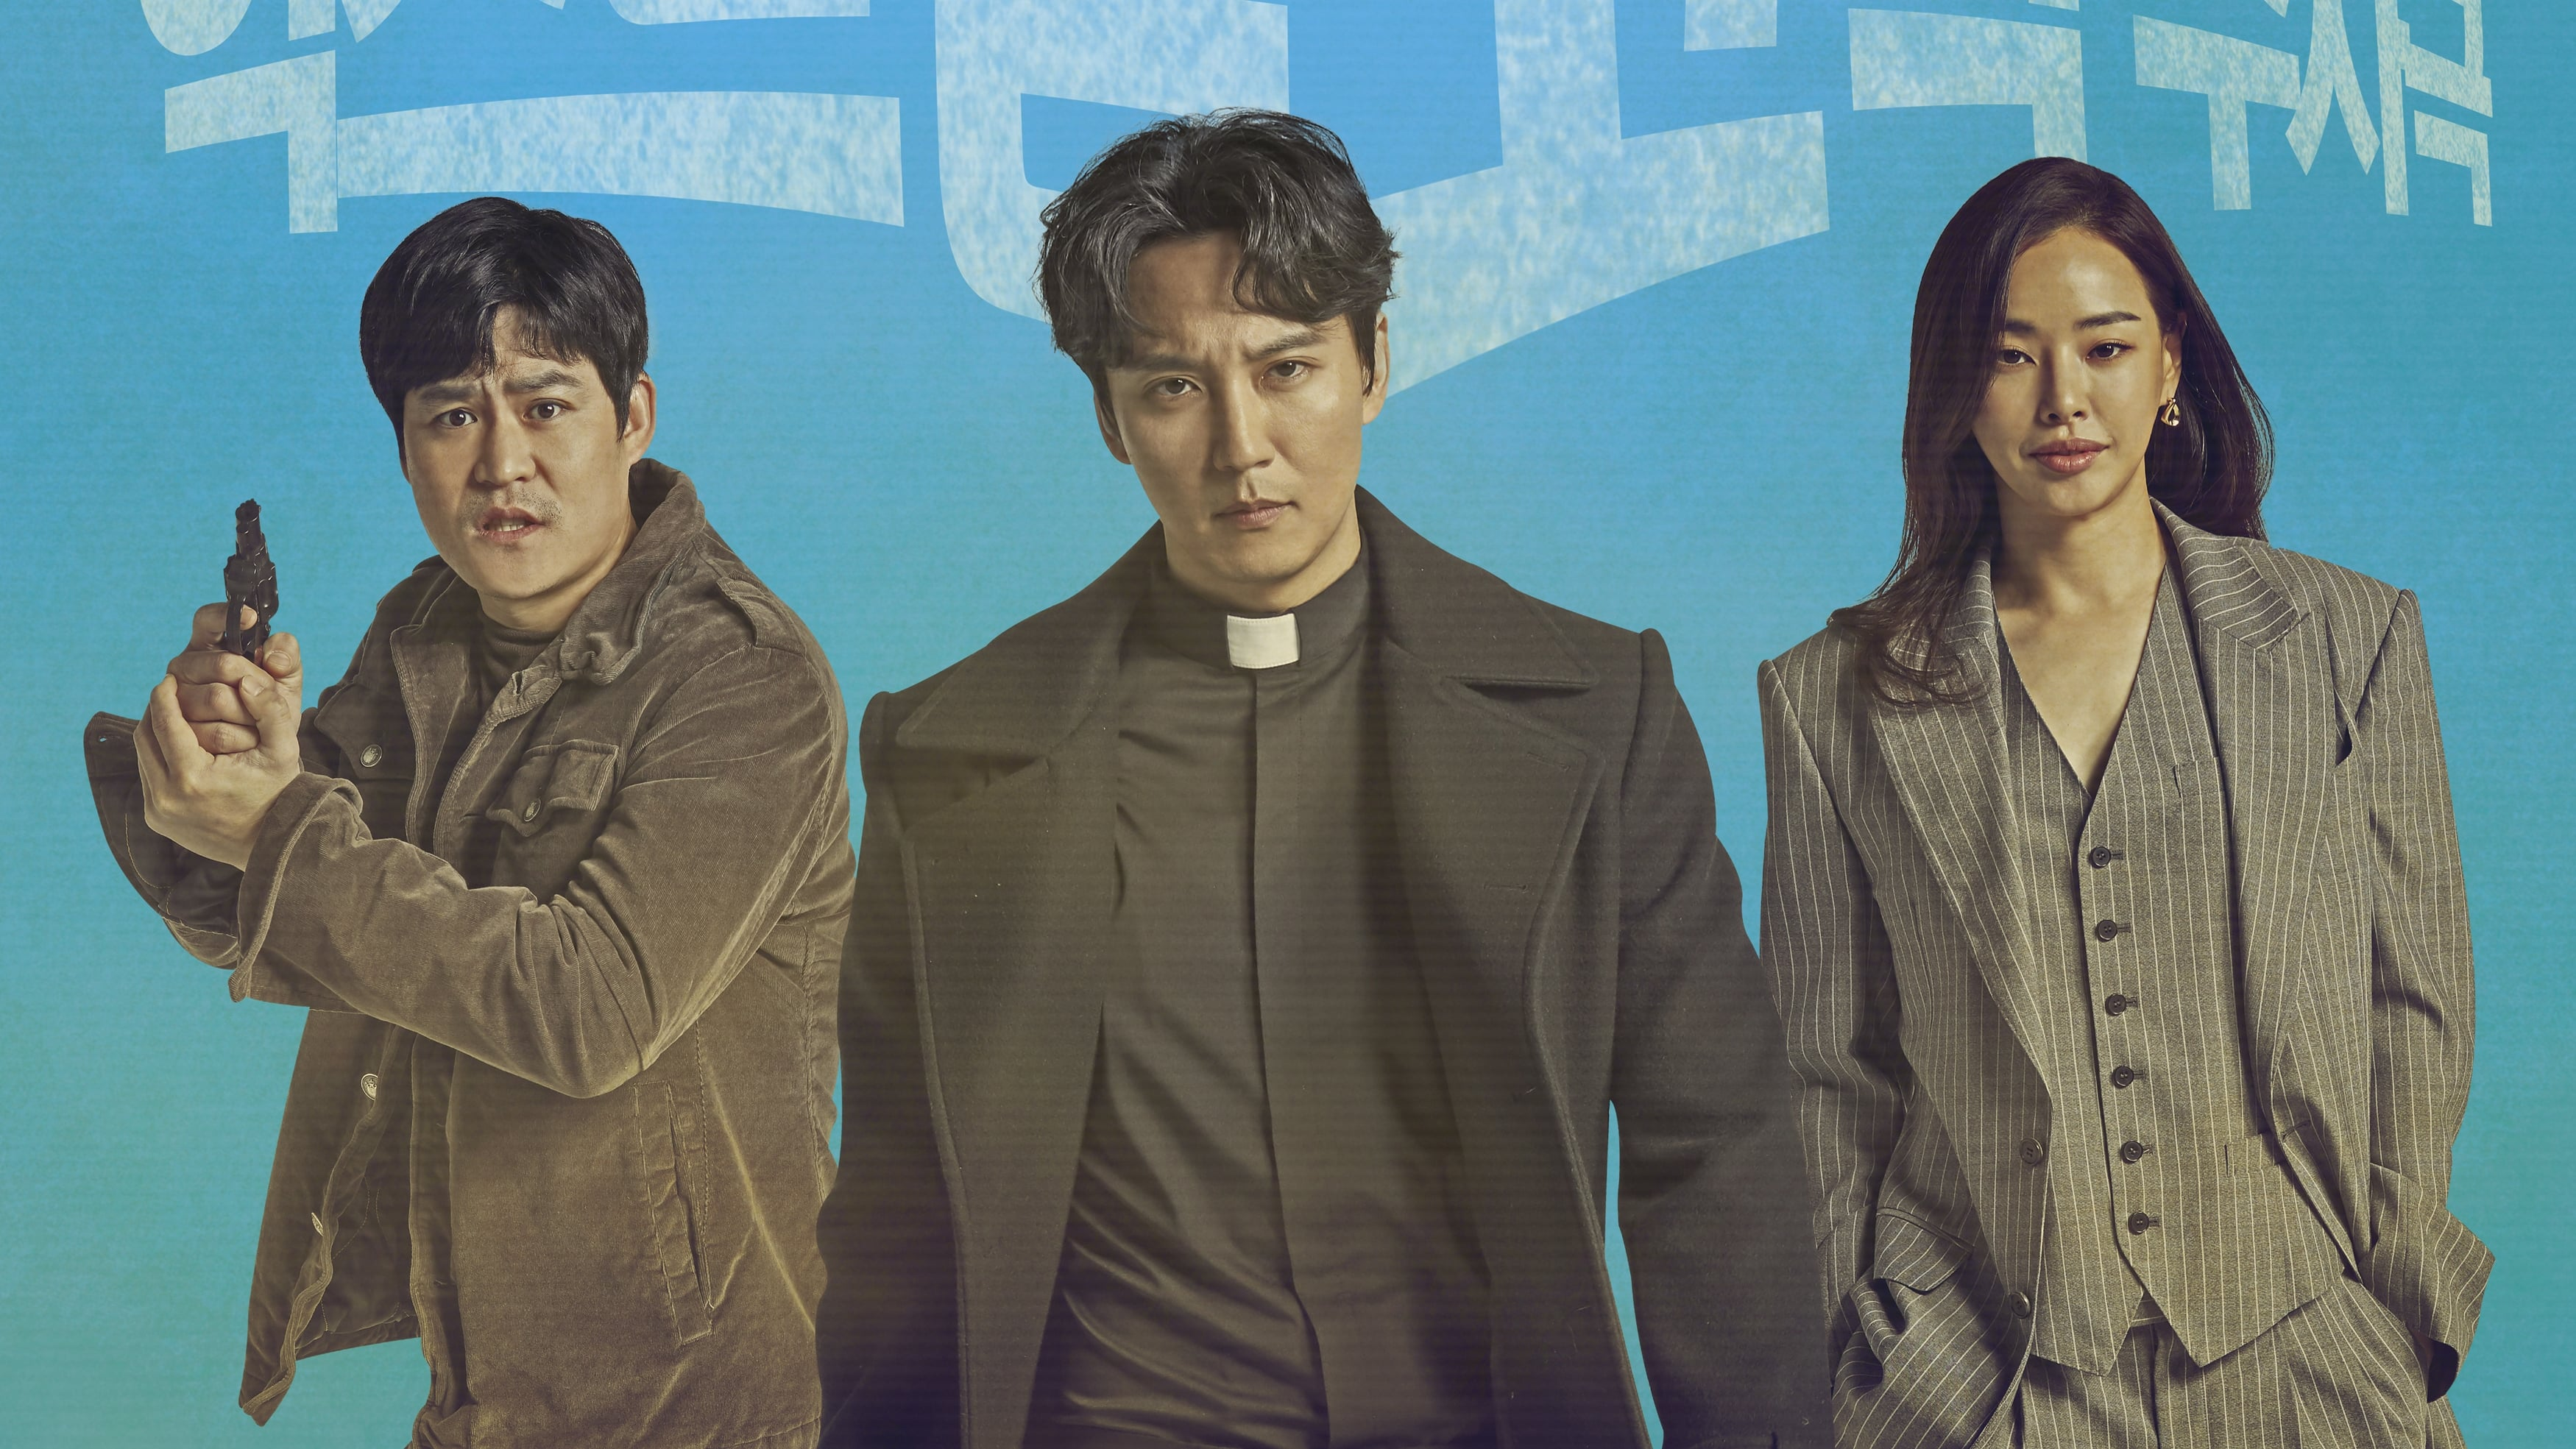 Fiery Priest Episode 19-20